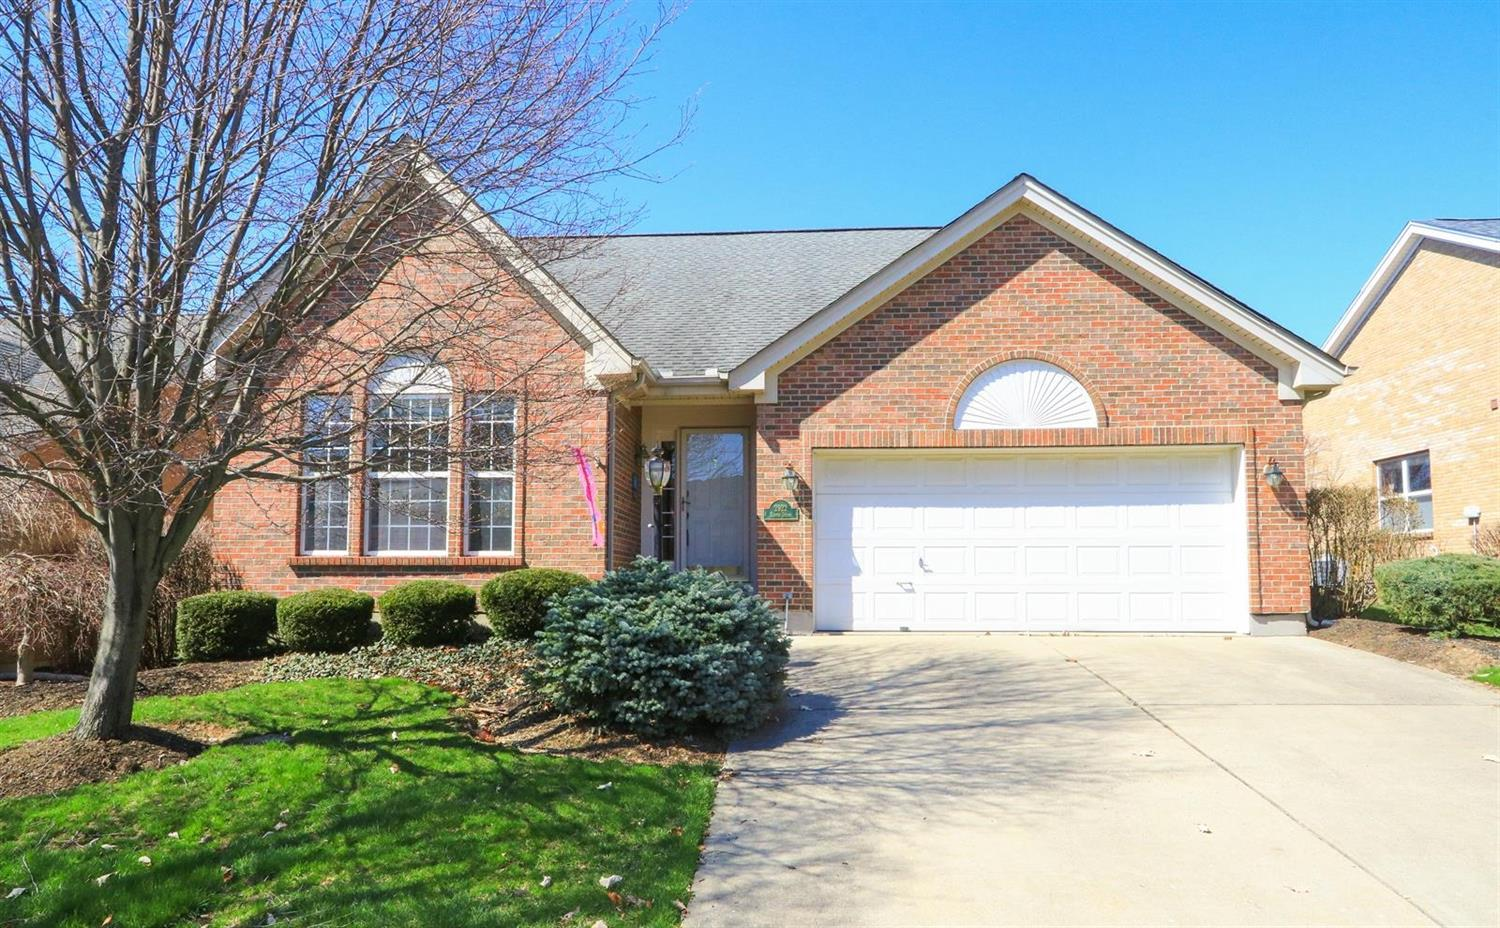 2922 Baffin Dr Fairfield Twp OH